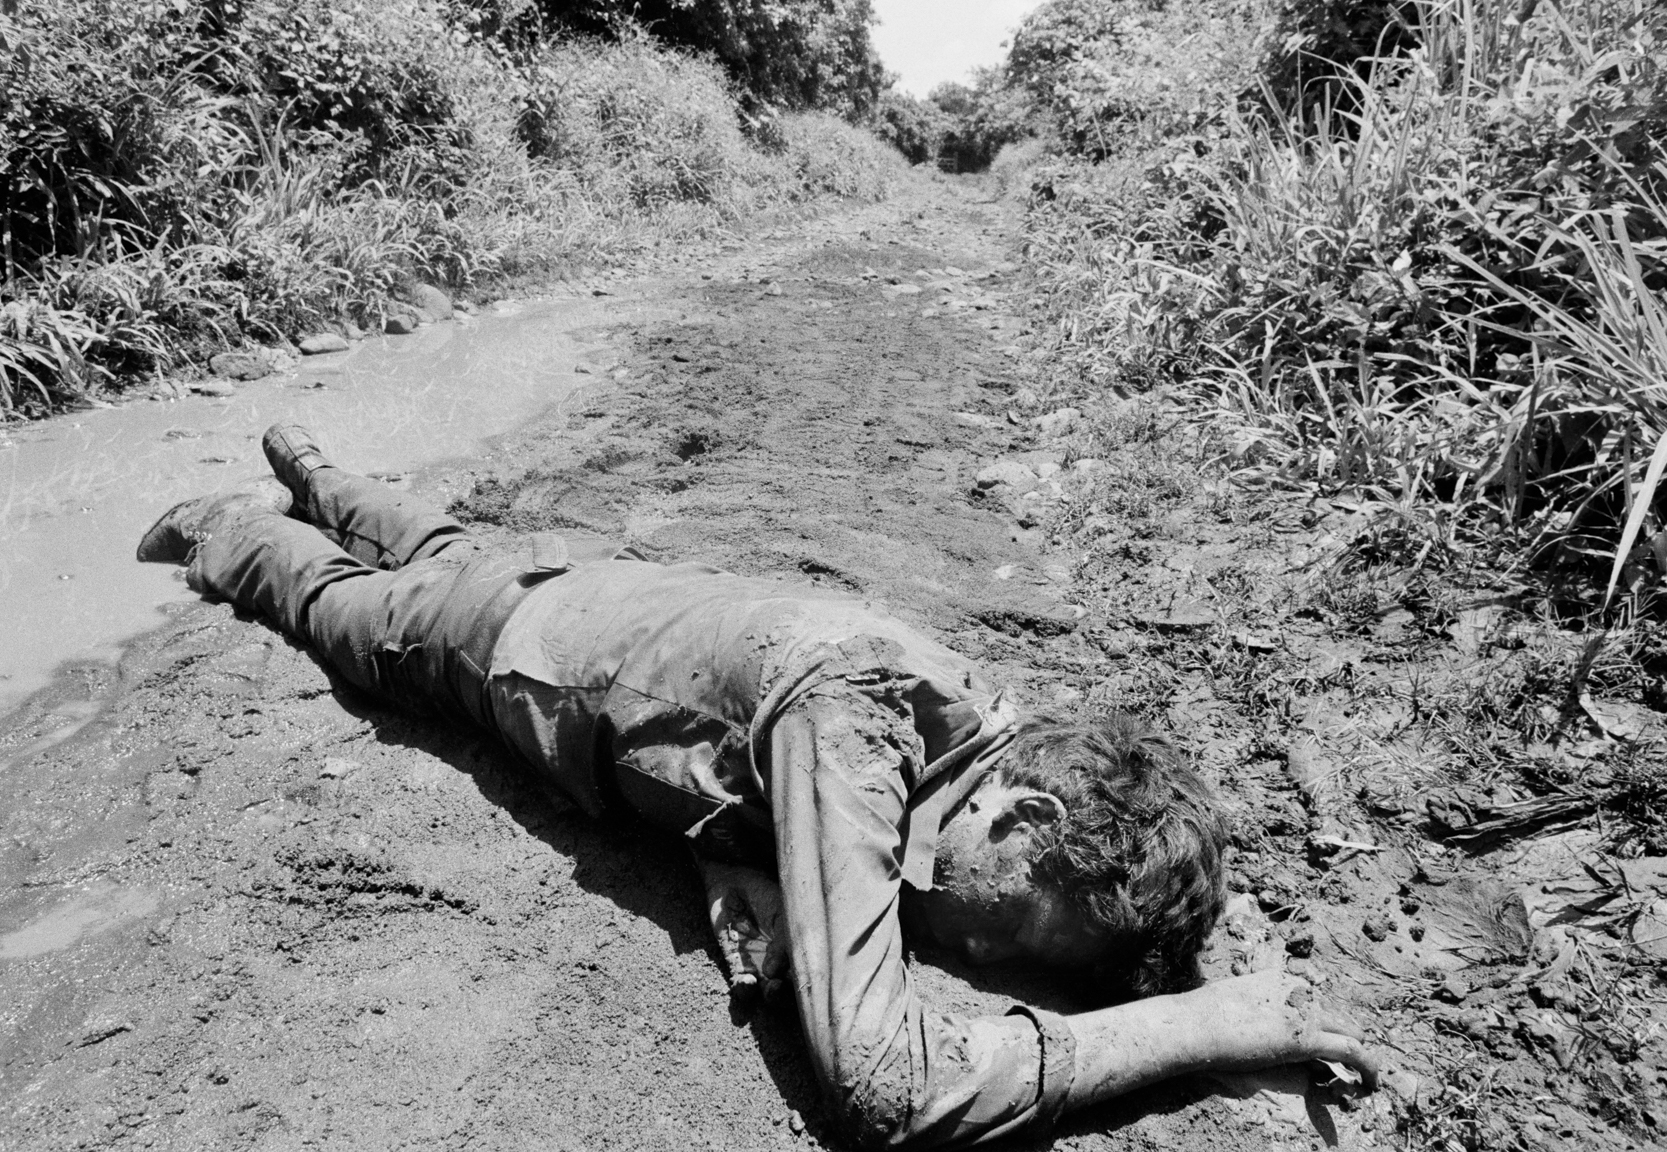 View of the corpse of an unidentified People's Revolutionary Army (ERP) guerrilla on a muddy dirt road September 1983 in San Miguel department, El Salvador. At the time, the country was engaged in what became a 13-year civil war between successive right-wing governments and various armed guerrilla factions that eventually claimed over 75,000 lives before ending in 1992.